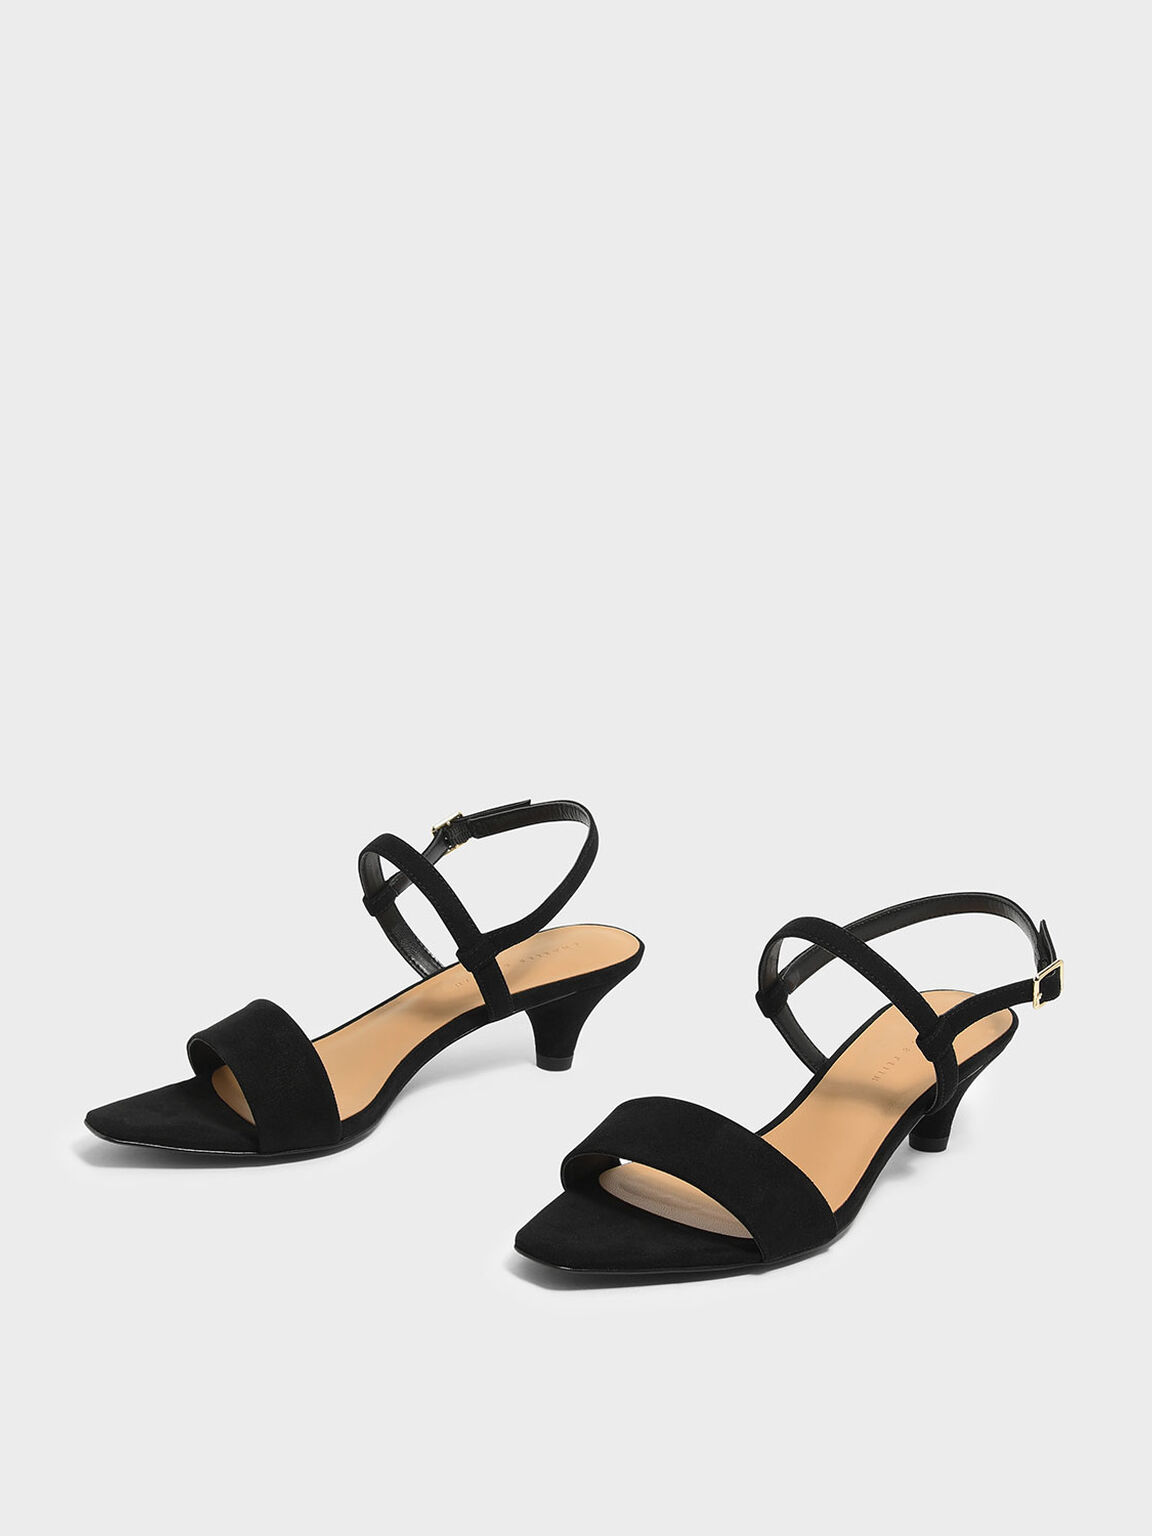 Mini Square Toe Heeled Sandals, Black, hi-res